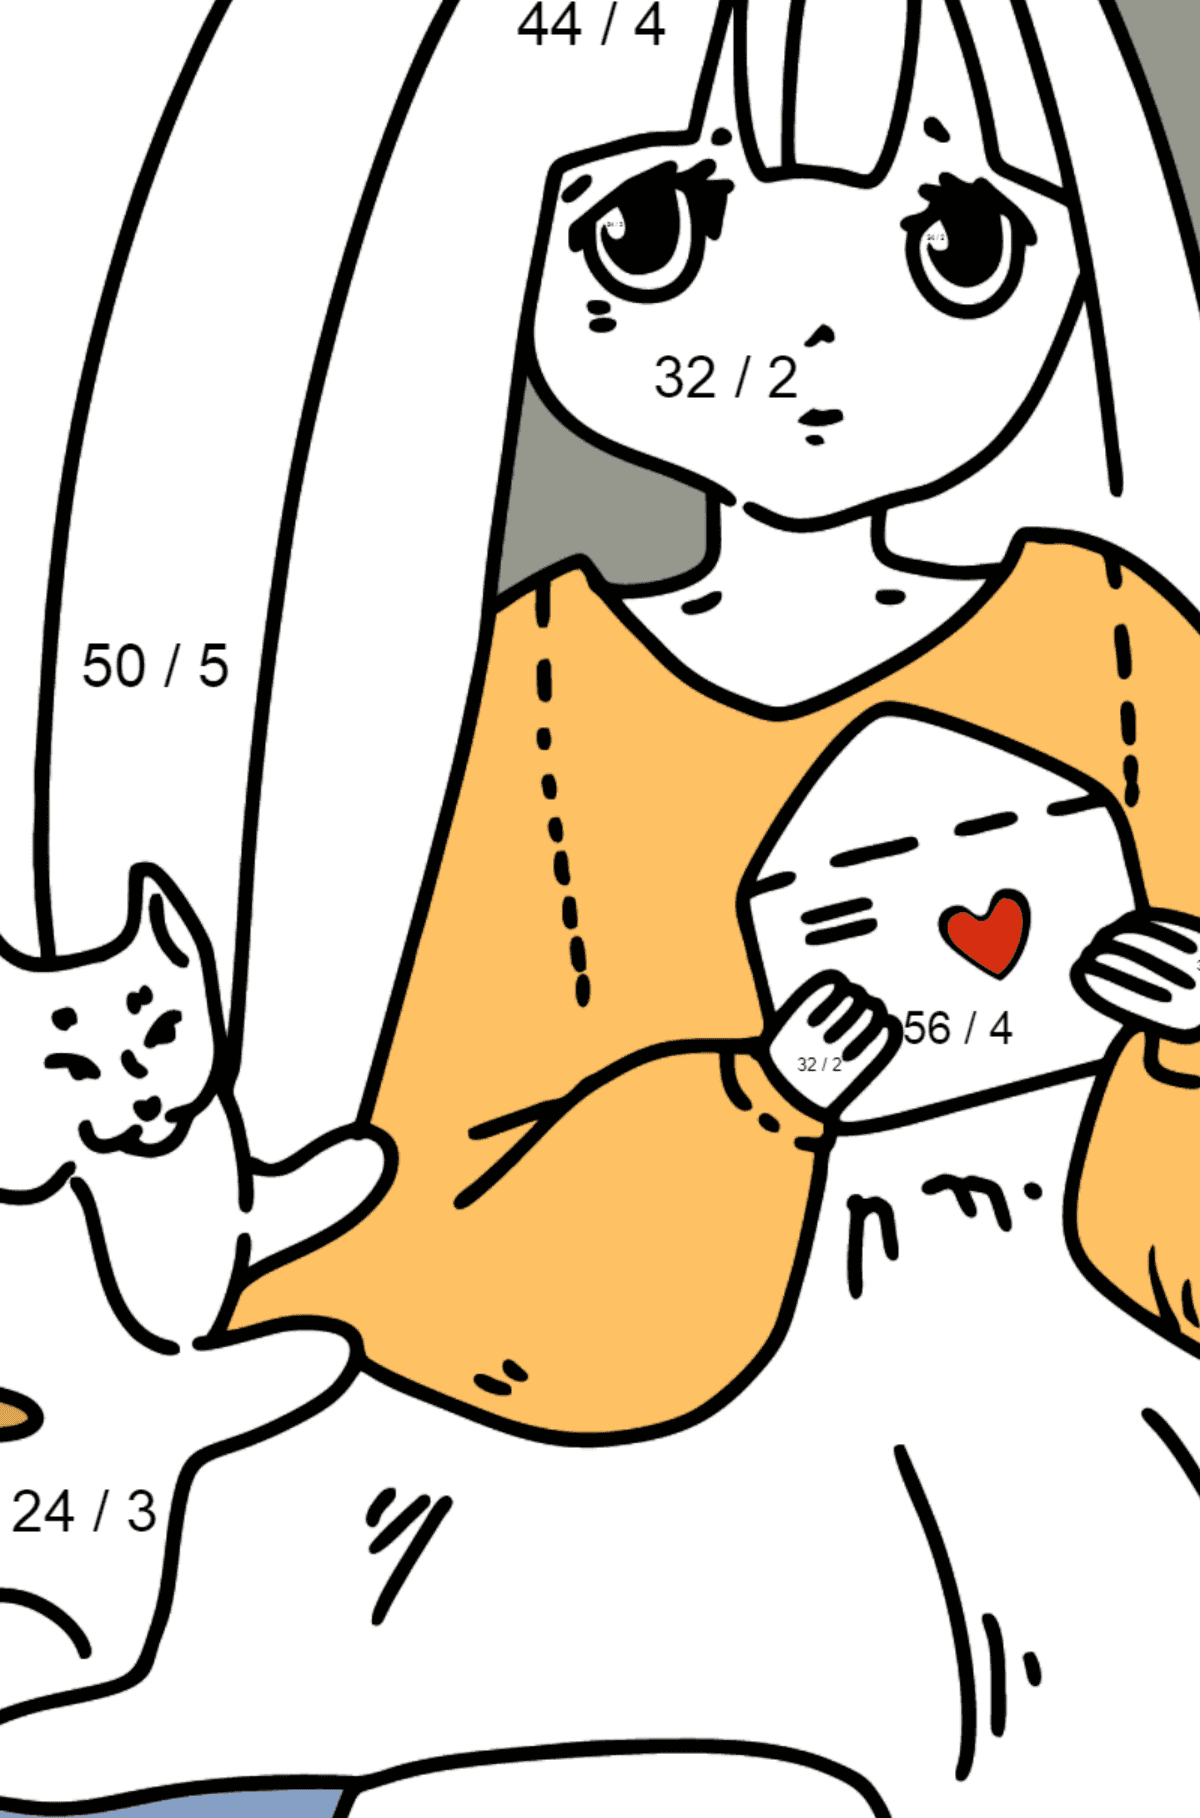 Anime Cute Girl Coloring Pages - Math Coloring - Division for Kids